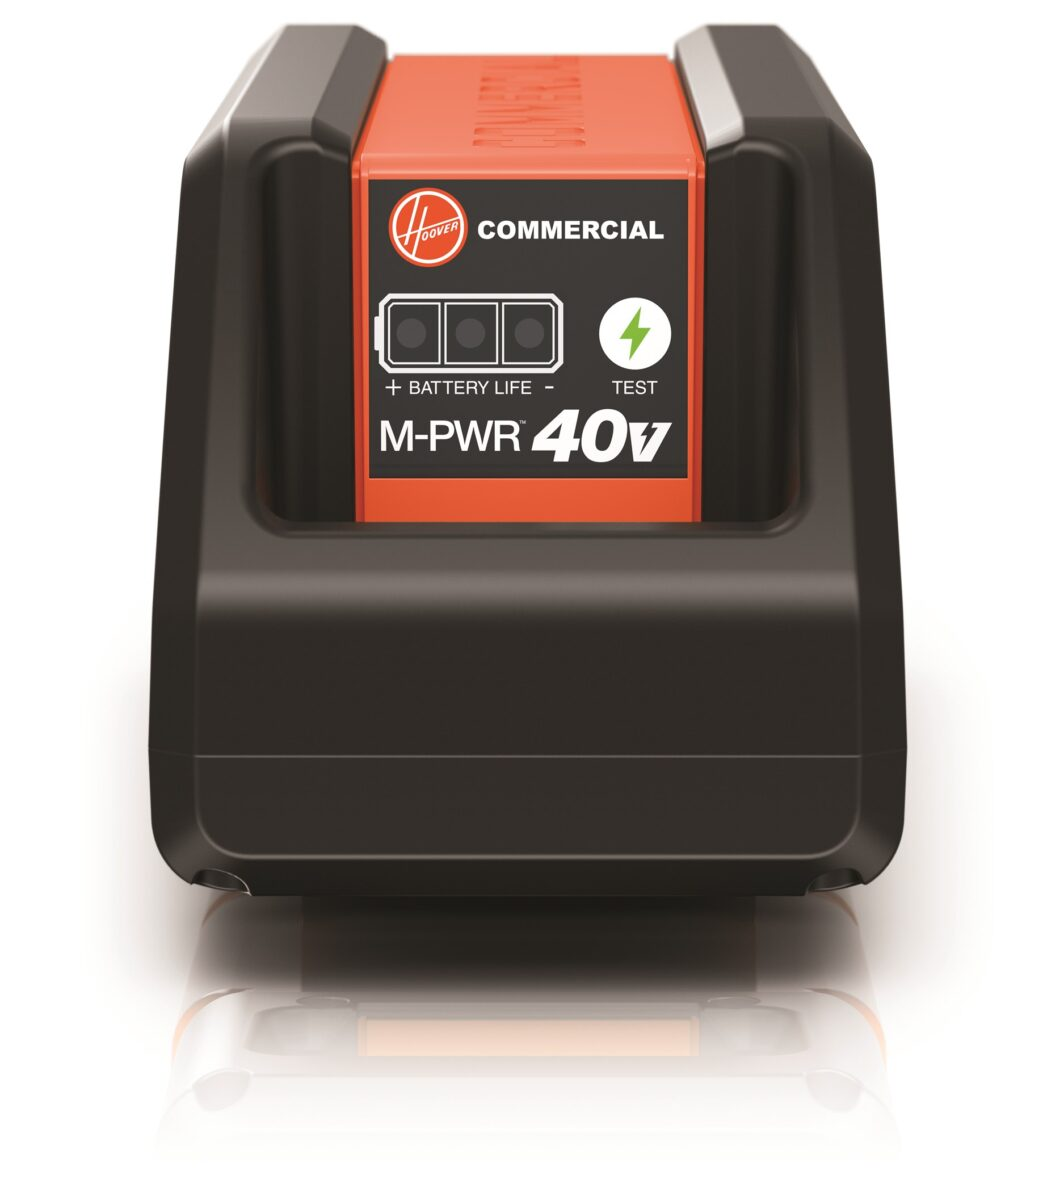 Hoover M-PWR 40v Lithium-Ion Battery for Battery Backpack